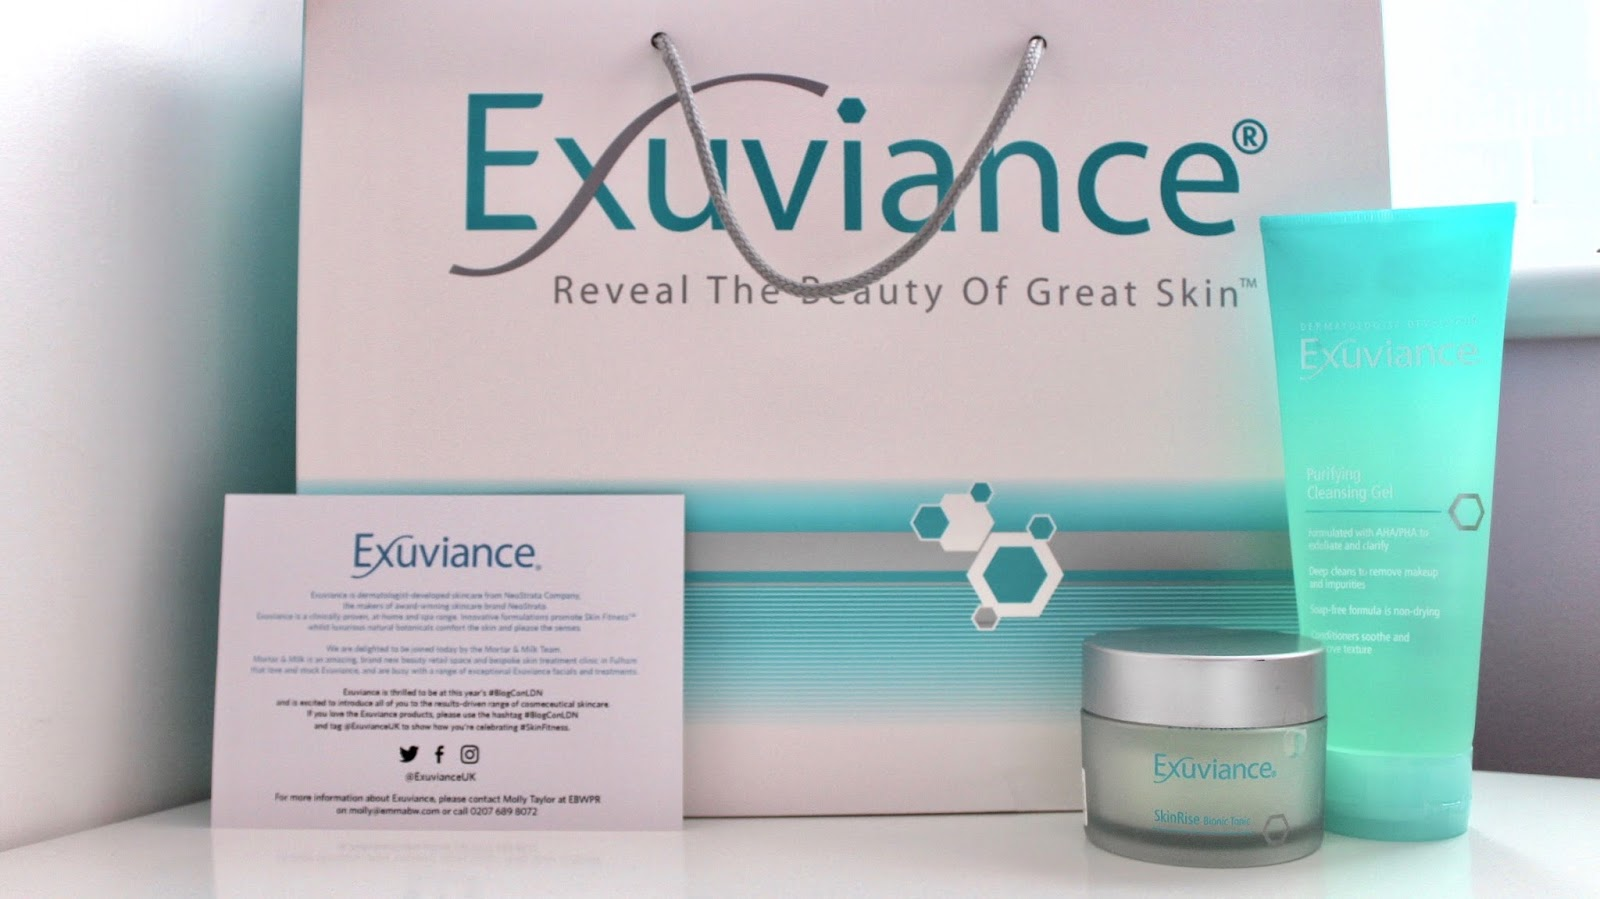 Exuviance Beauty & Skin Care Brand